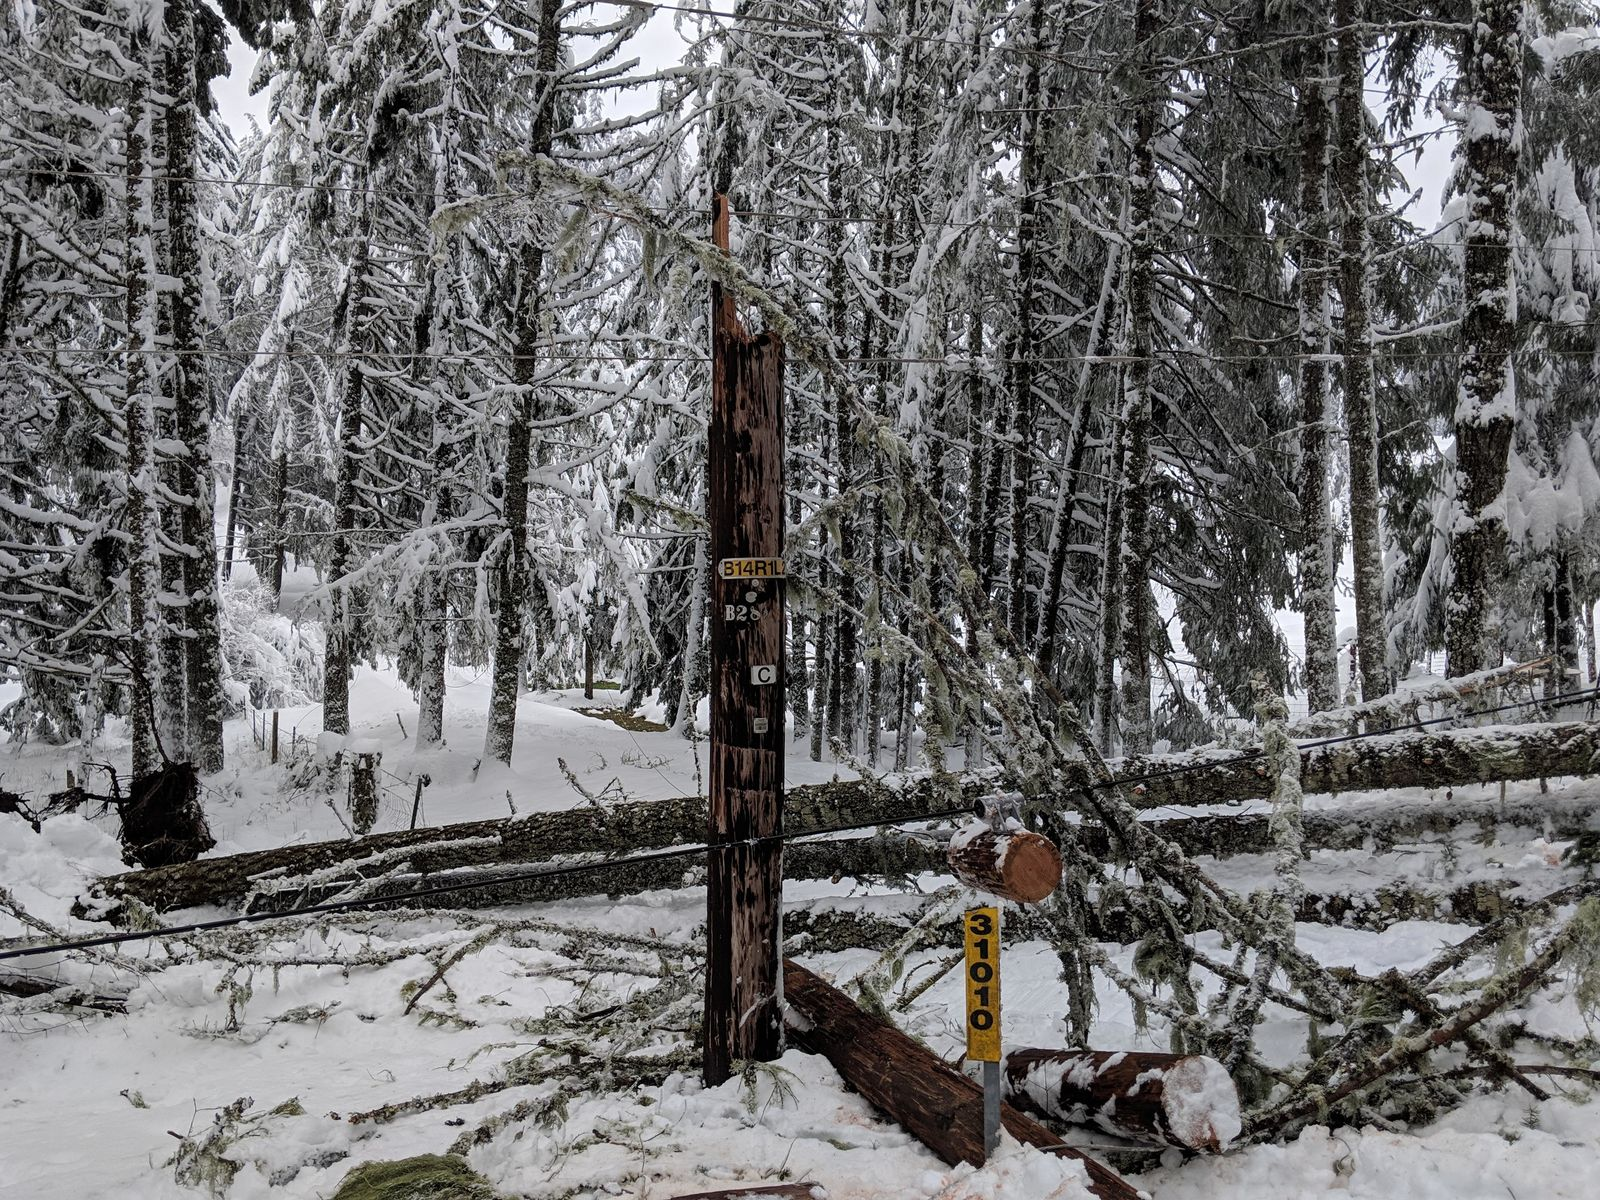 Snow storm damage throughout Lane Electric Cooperative service territory, Feb. 27, 2019. A February 2019 snowstorm hit Lane and Douglas county hard. Electrical utilities received FEMA grants to help make repairs - but fine print in the 2017 GOP tax bill makes those grants taxable, which could drive up costs for ratepayers. (Lane Electric Cooperative photo)